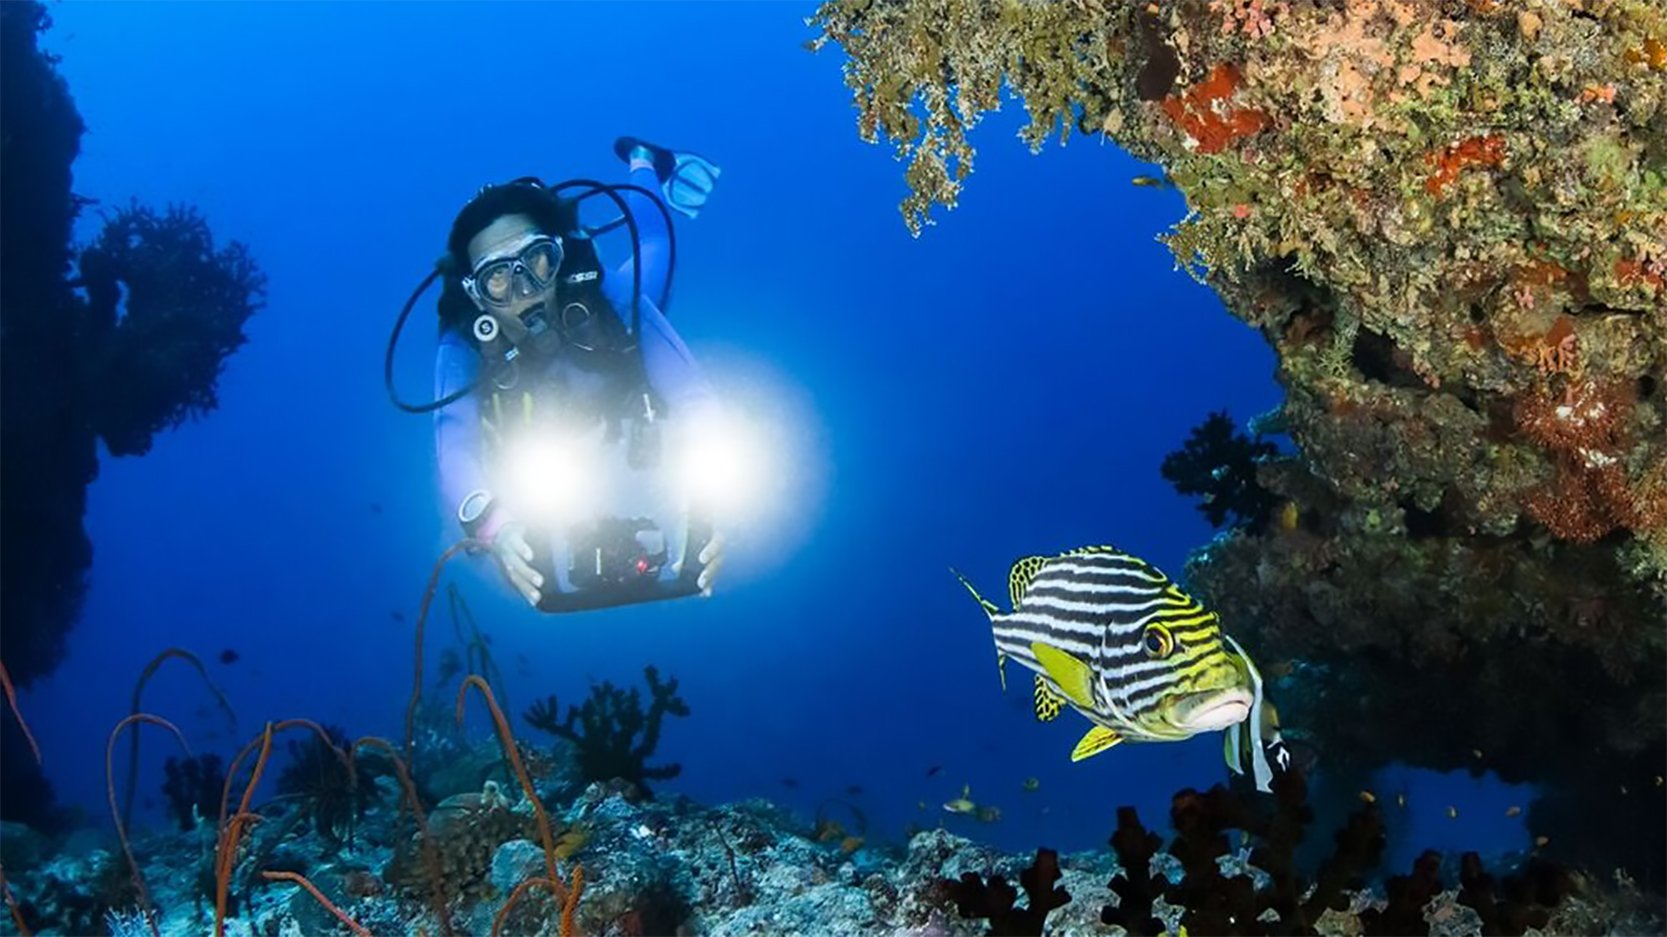 Diving with a GoPo